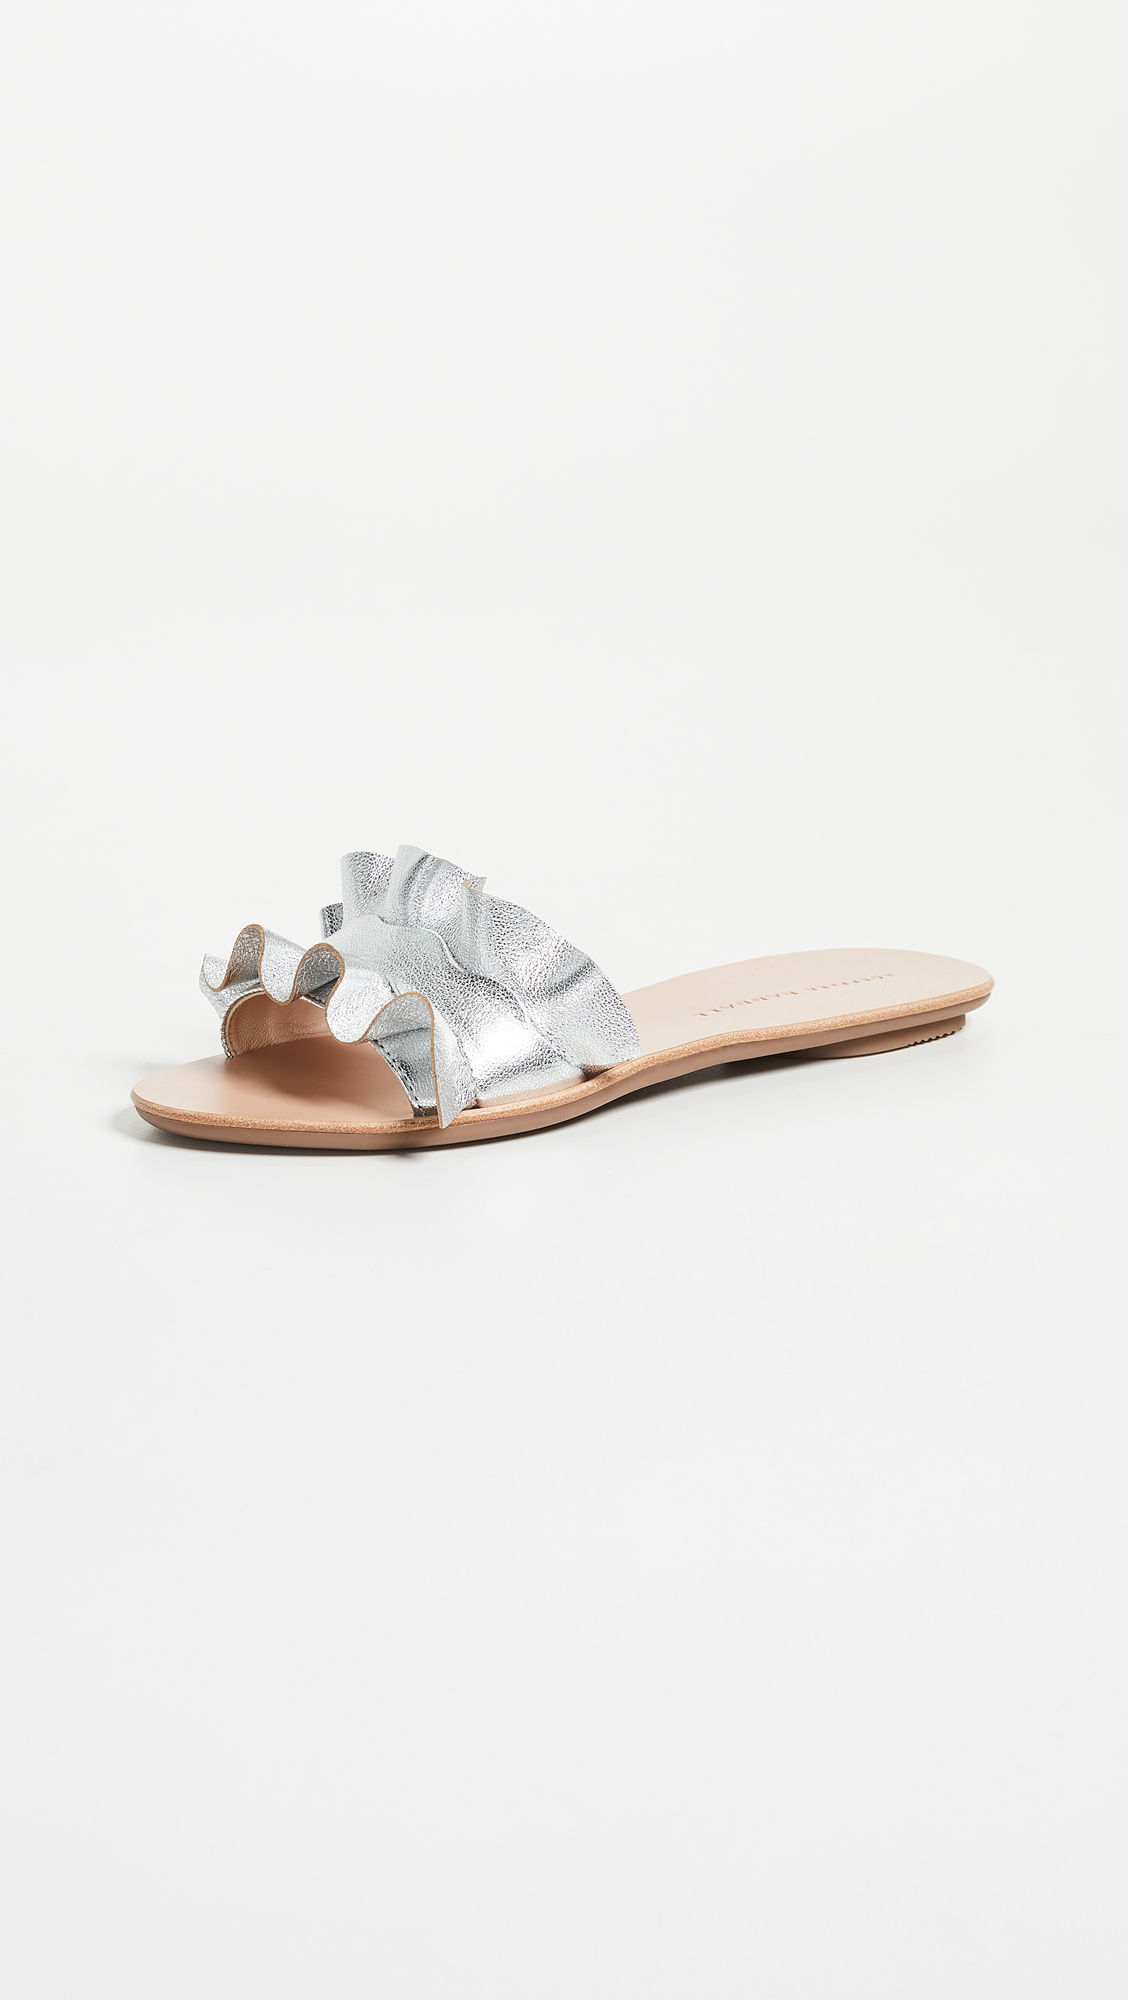 Metallic Slides - There's something about metallic accessories in the summertime that I just love! The ruffle feminine detail on these slides is so sweet, and they're a great neutral shoe that goes with everything.